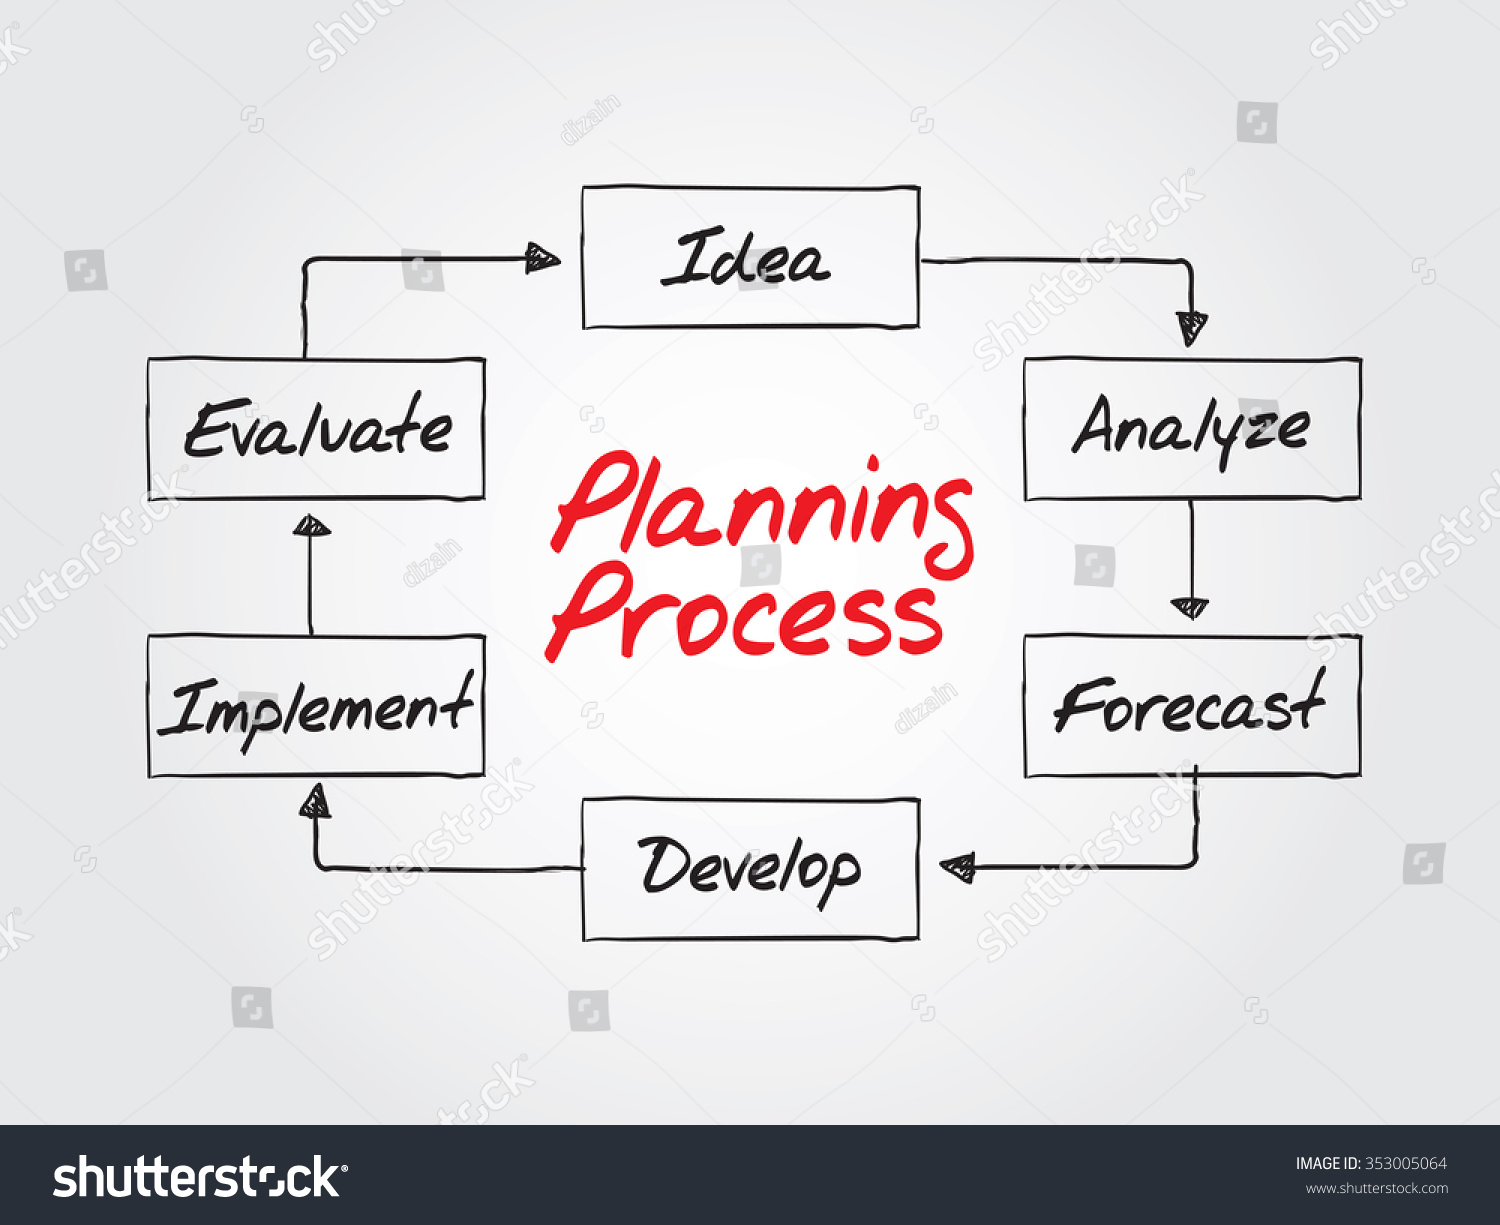 Planning Process Flow Chart Business Strategy Stock Illustration Diagram Images Concept Background